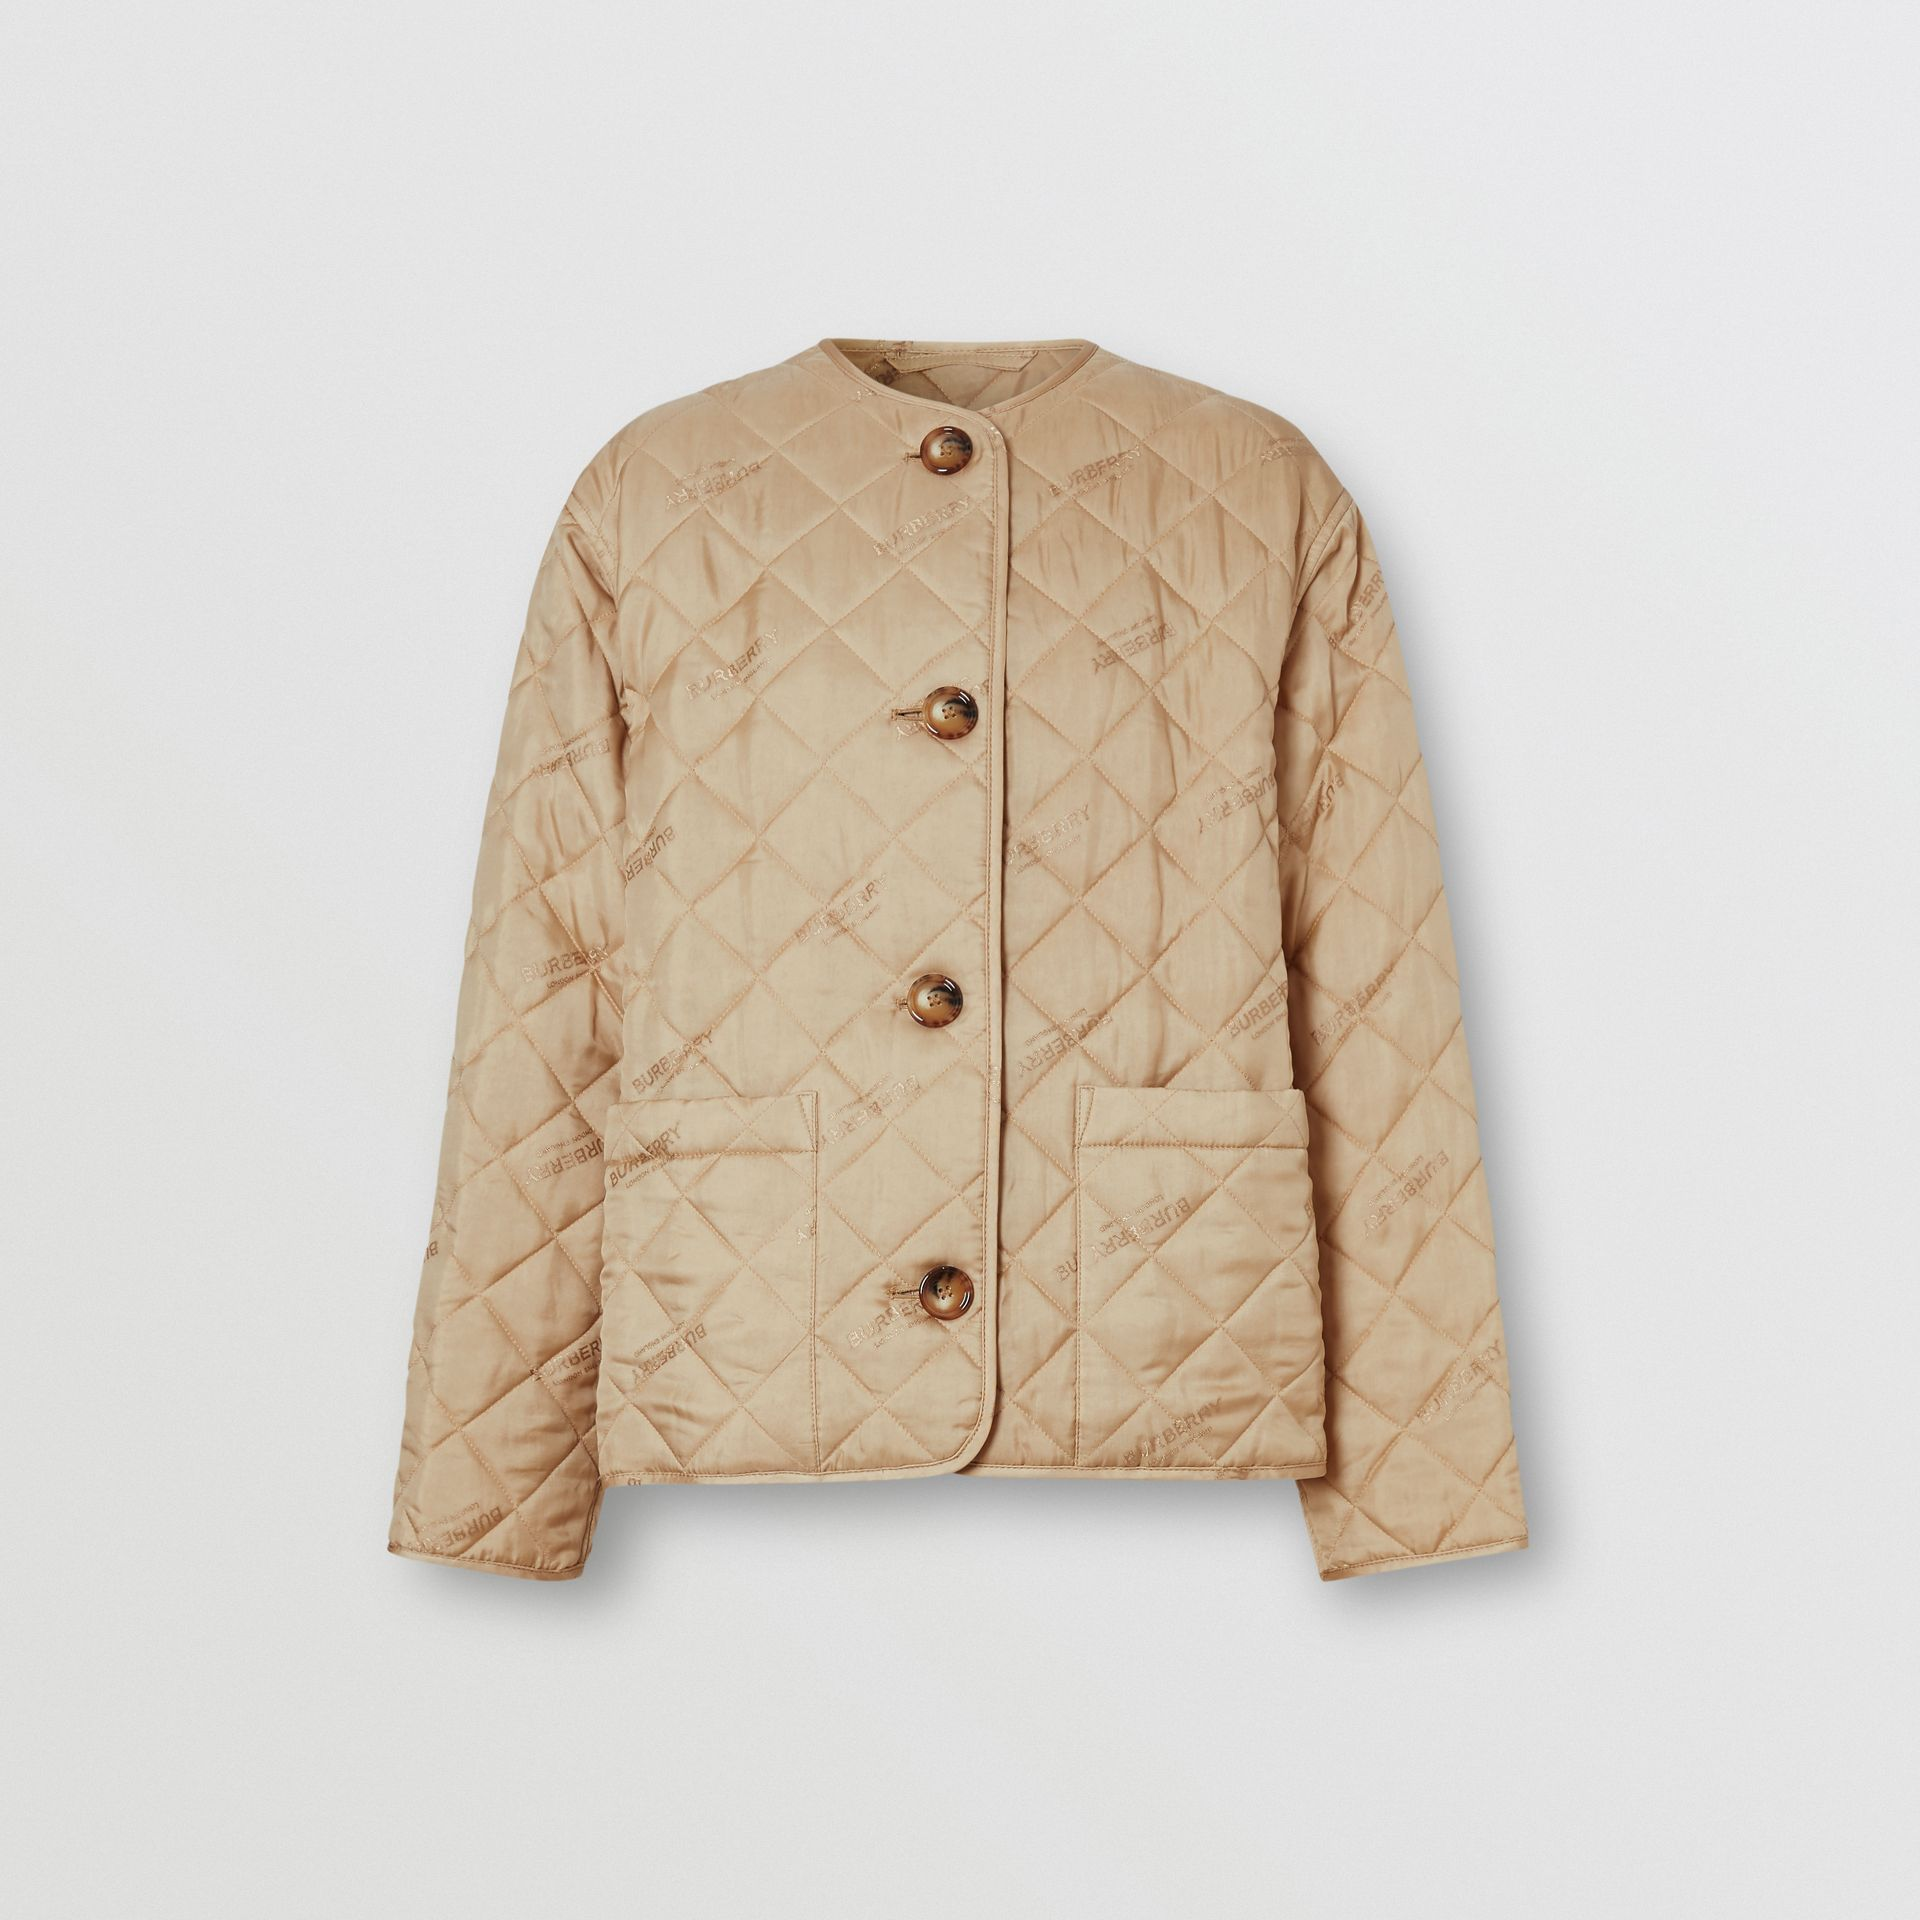 Logo Jacquard Diamond Quilted Jacket in Ecru - Women | Burberry United Kingdom - gallery image 3